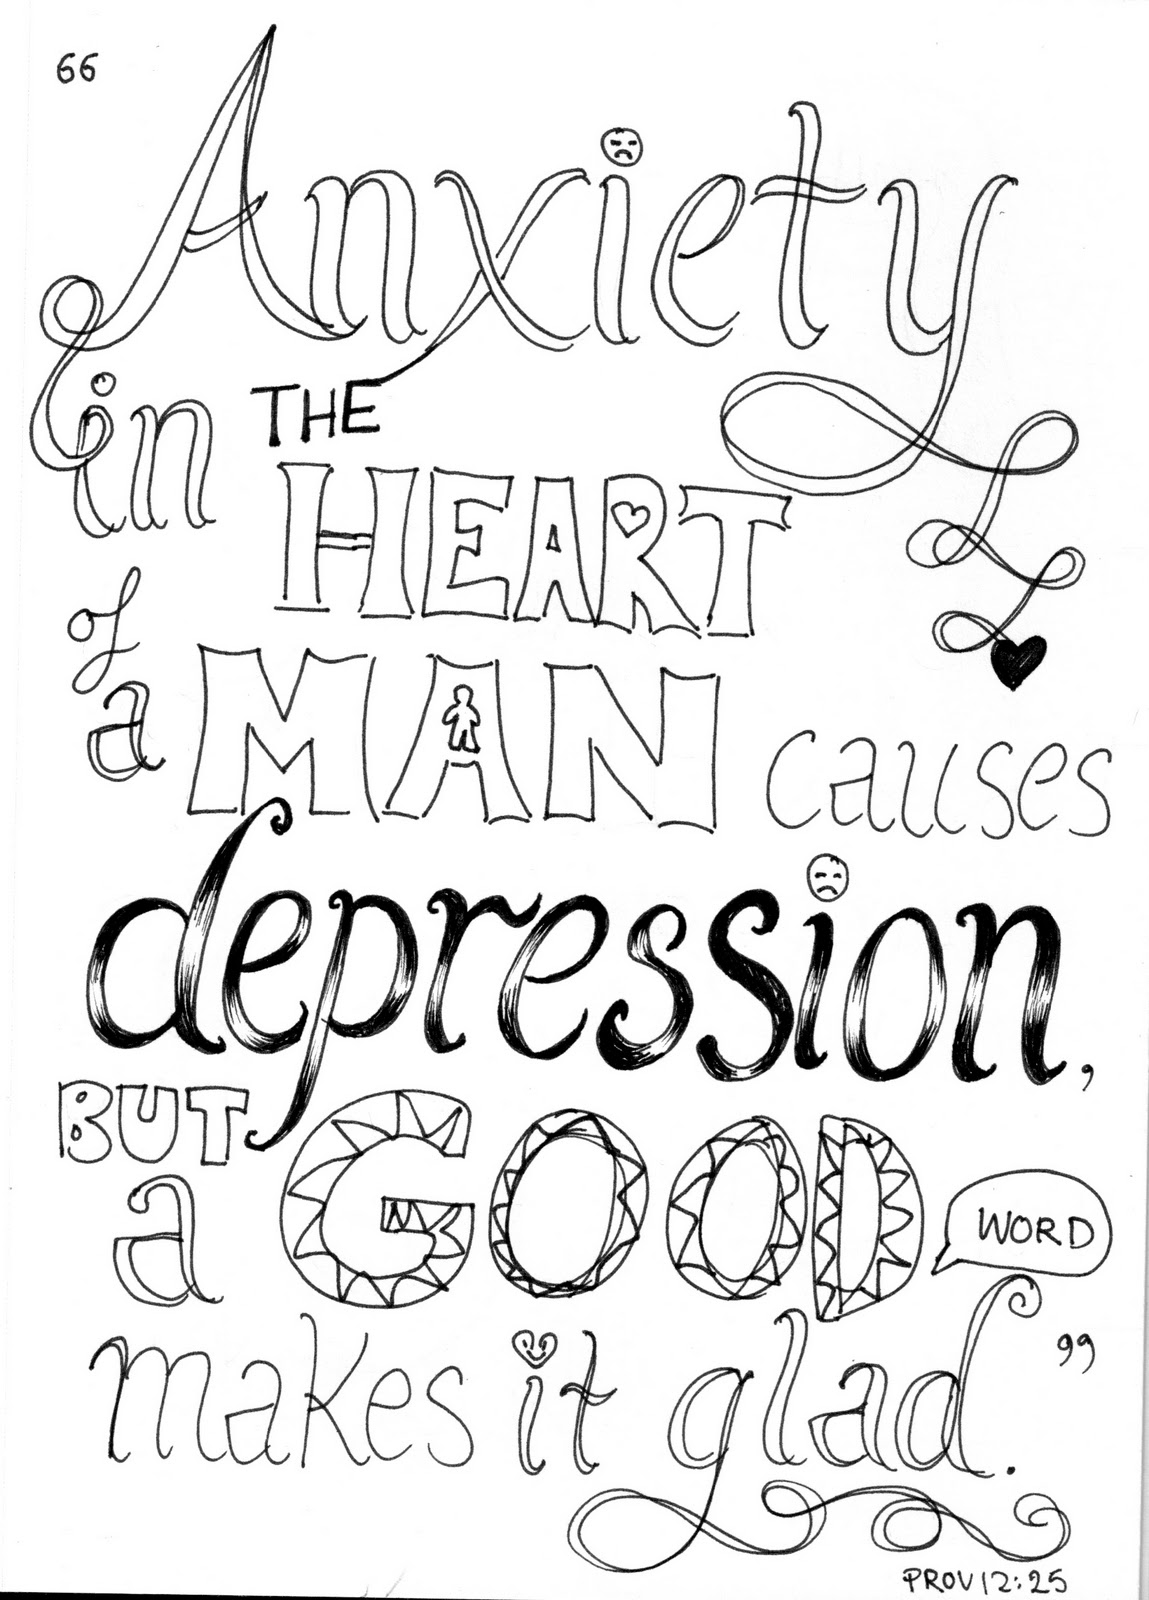 Free Bible Verse Coloring Pages Quote Anxiety in Heart printable